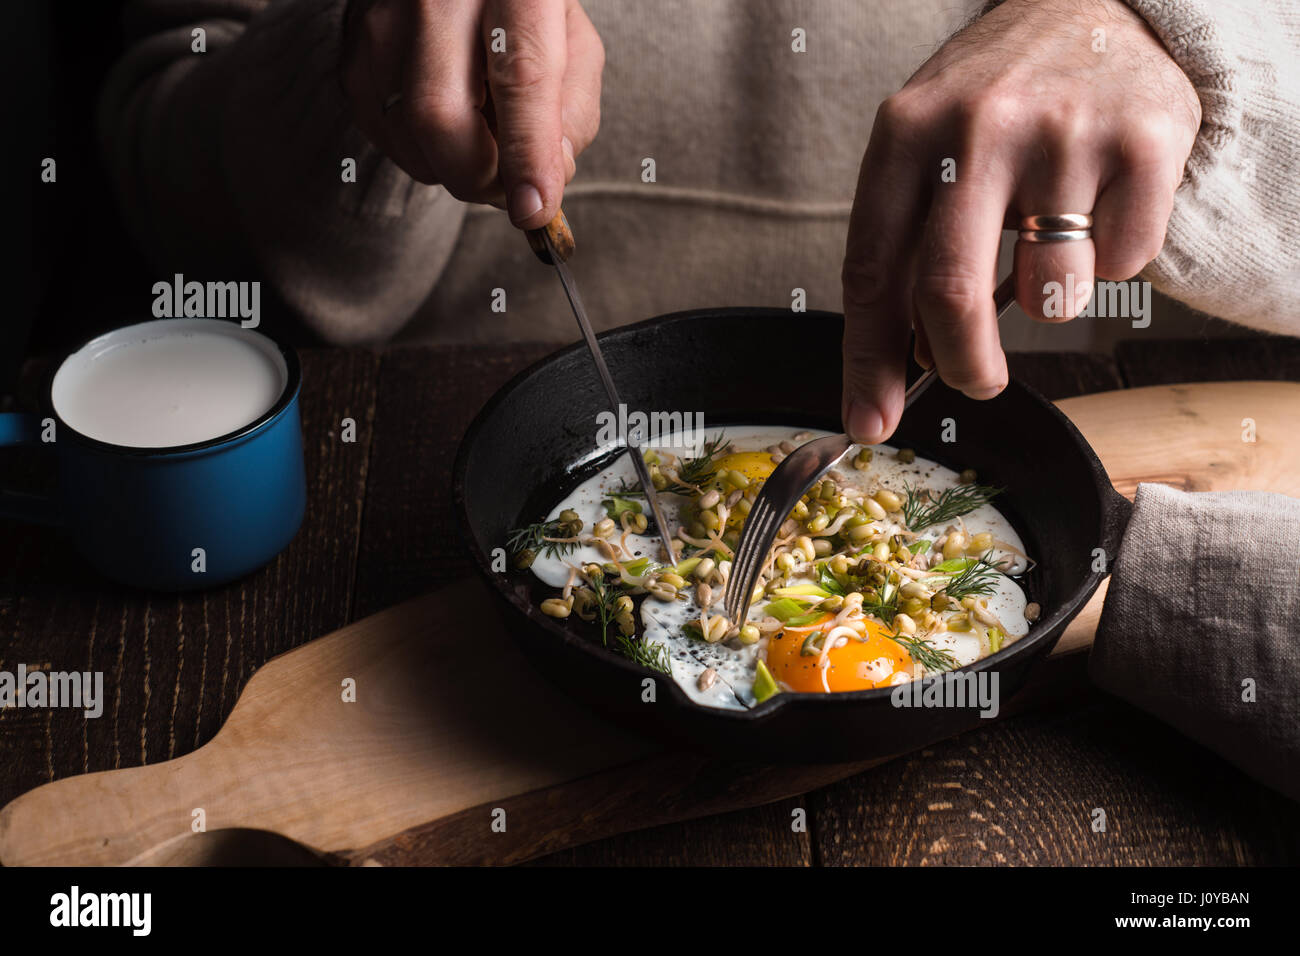 Eating scramble eggs on the wooden table horizontal Stock Photo